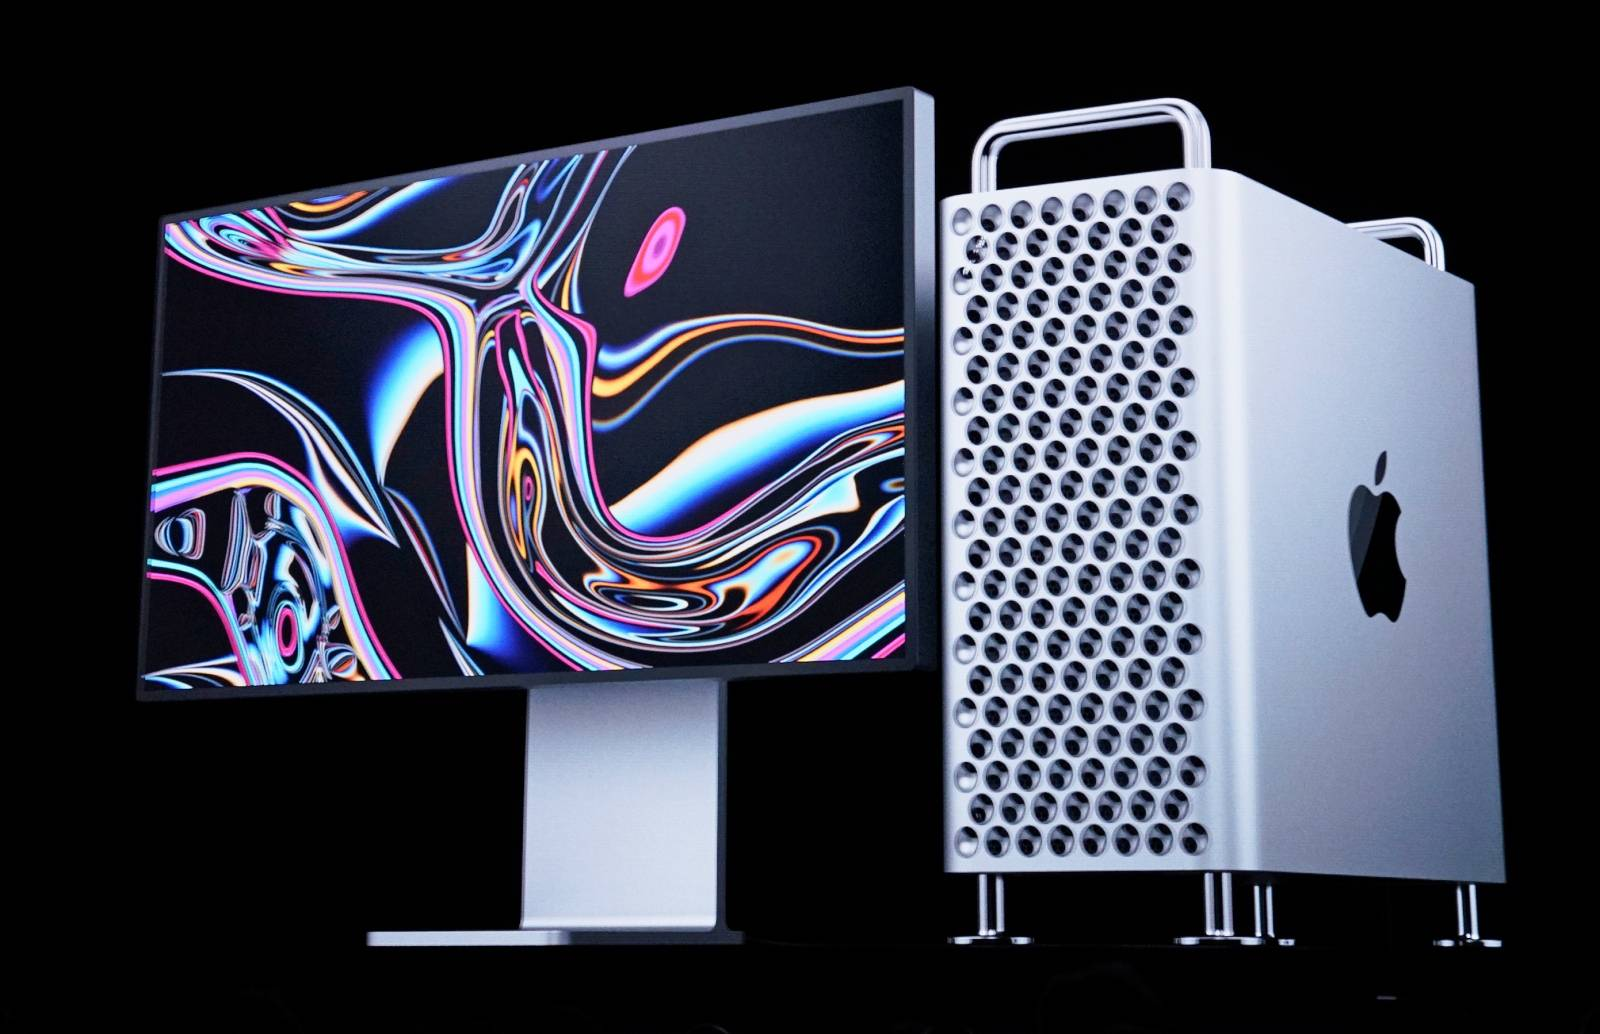 Apple's new Mac Pro is displayed during Apple's annual Worldwide Developers Conference in San Jose